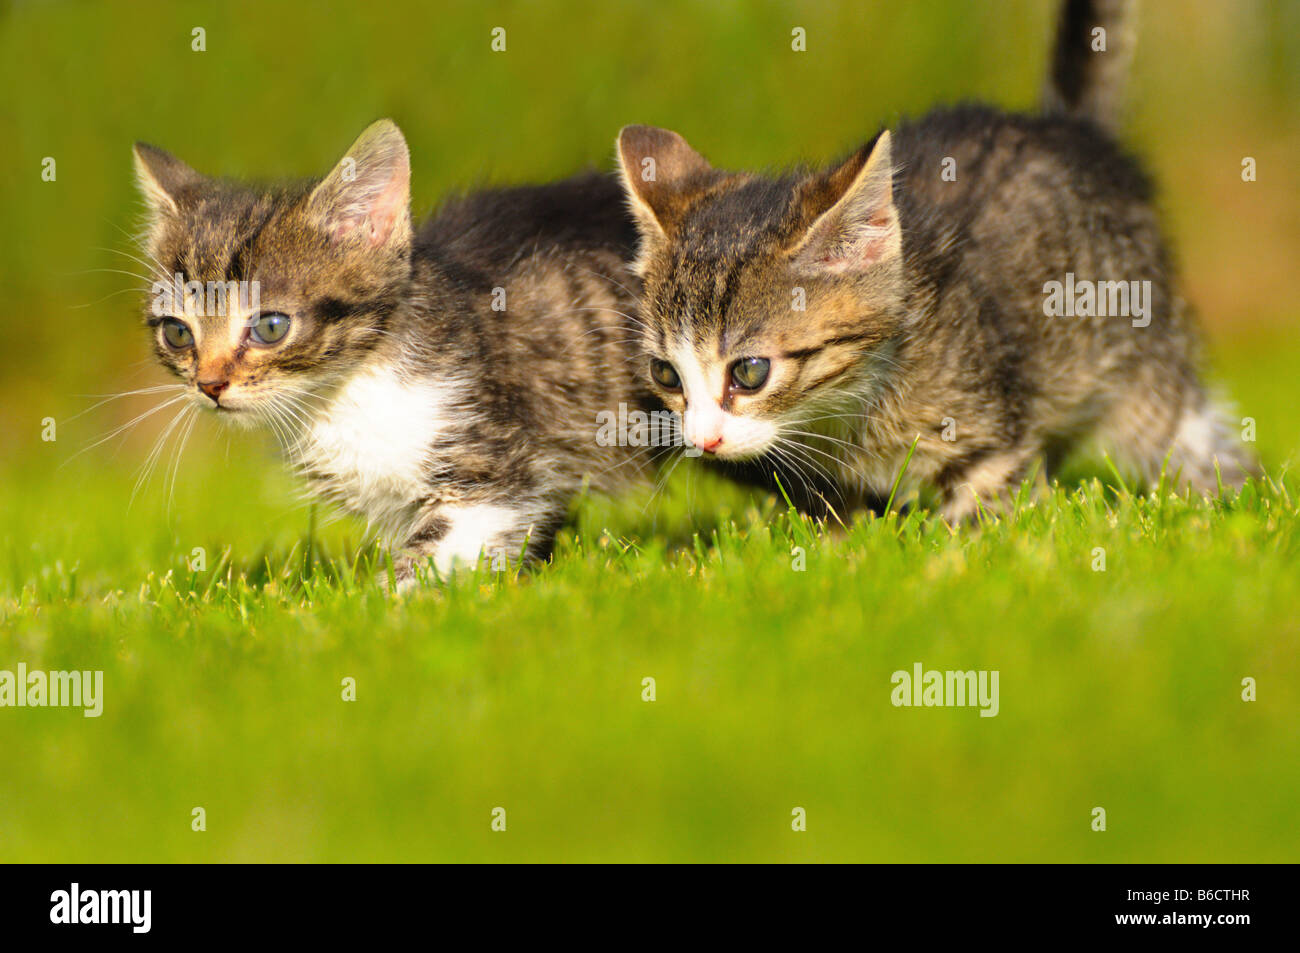 Close-up of two kittens walking in lawn - Stock Image